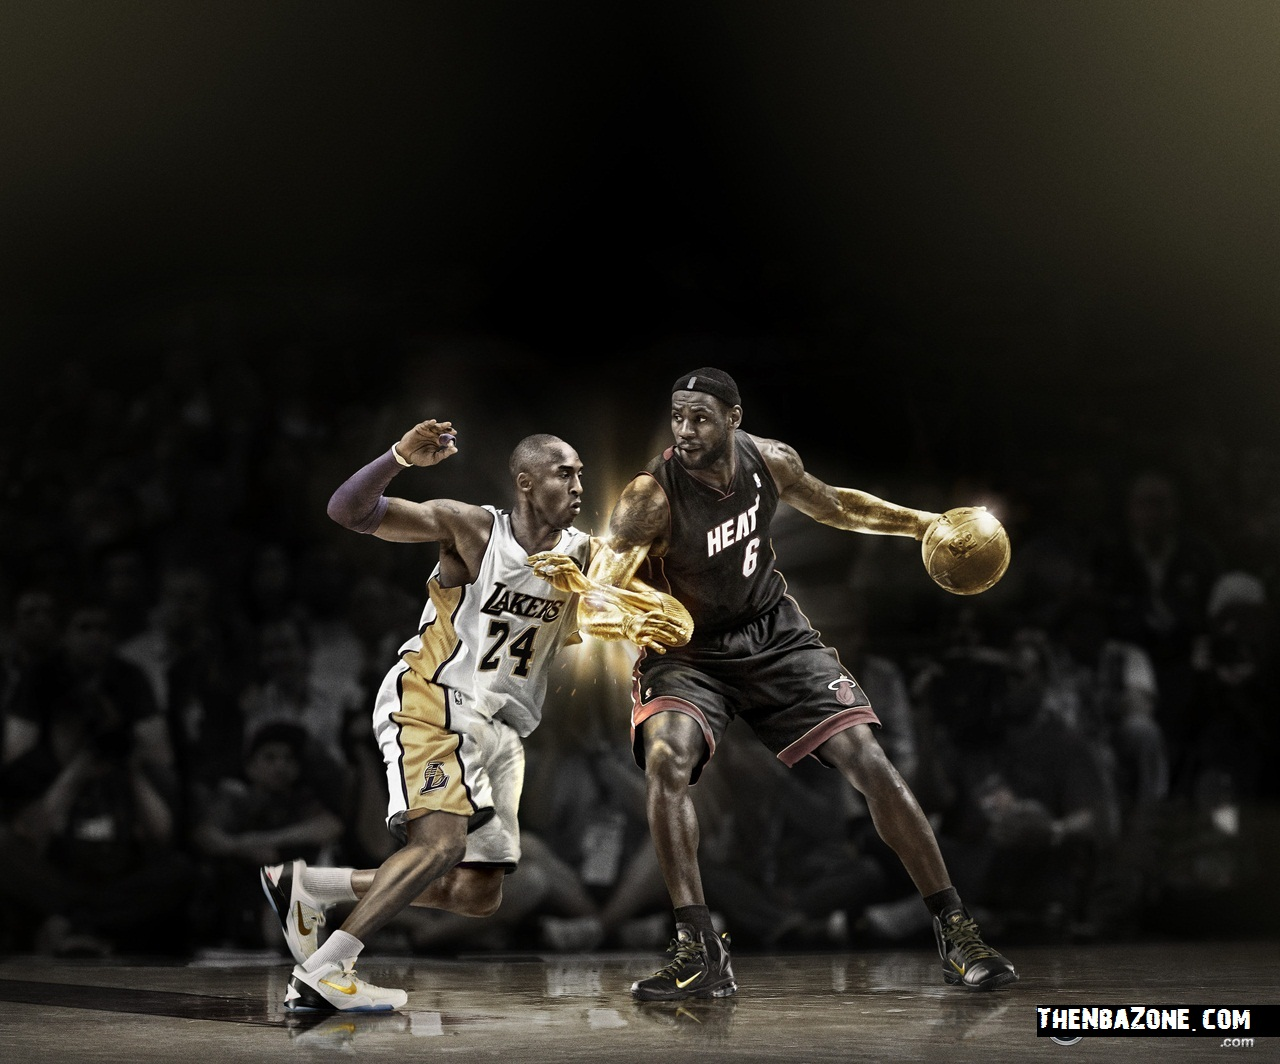 Best NBA Playoffs 2012 Wallpapers HD | TheNbaZone.com (Sudhanshu ...